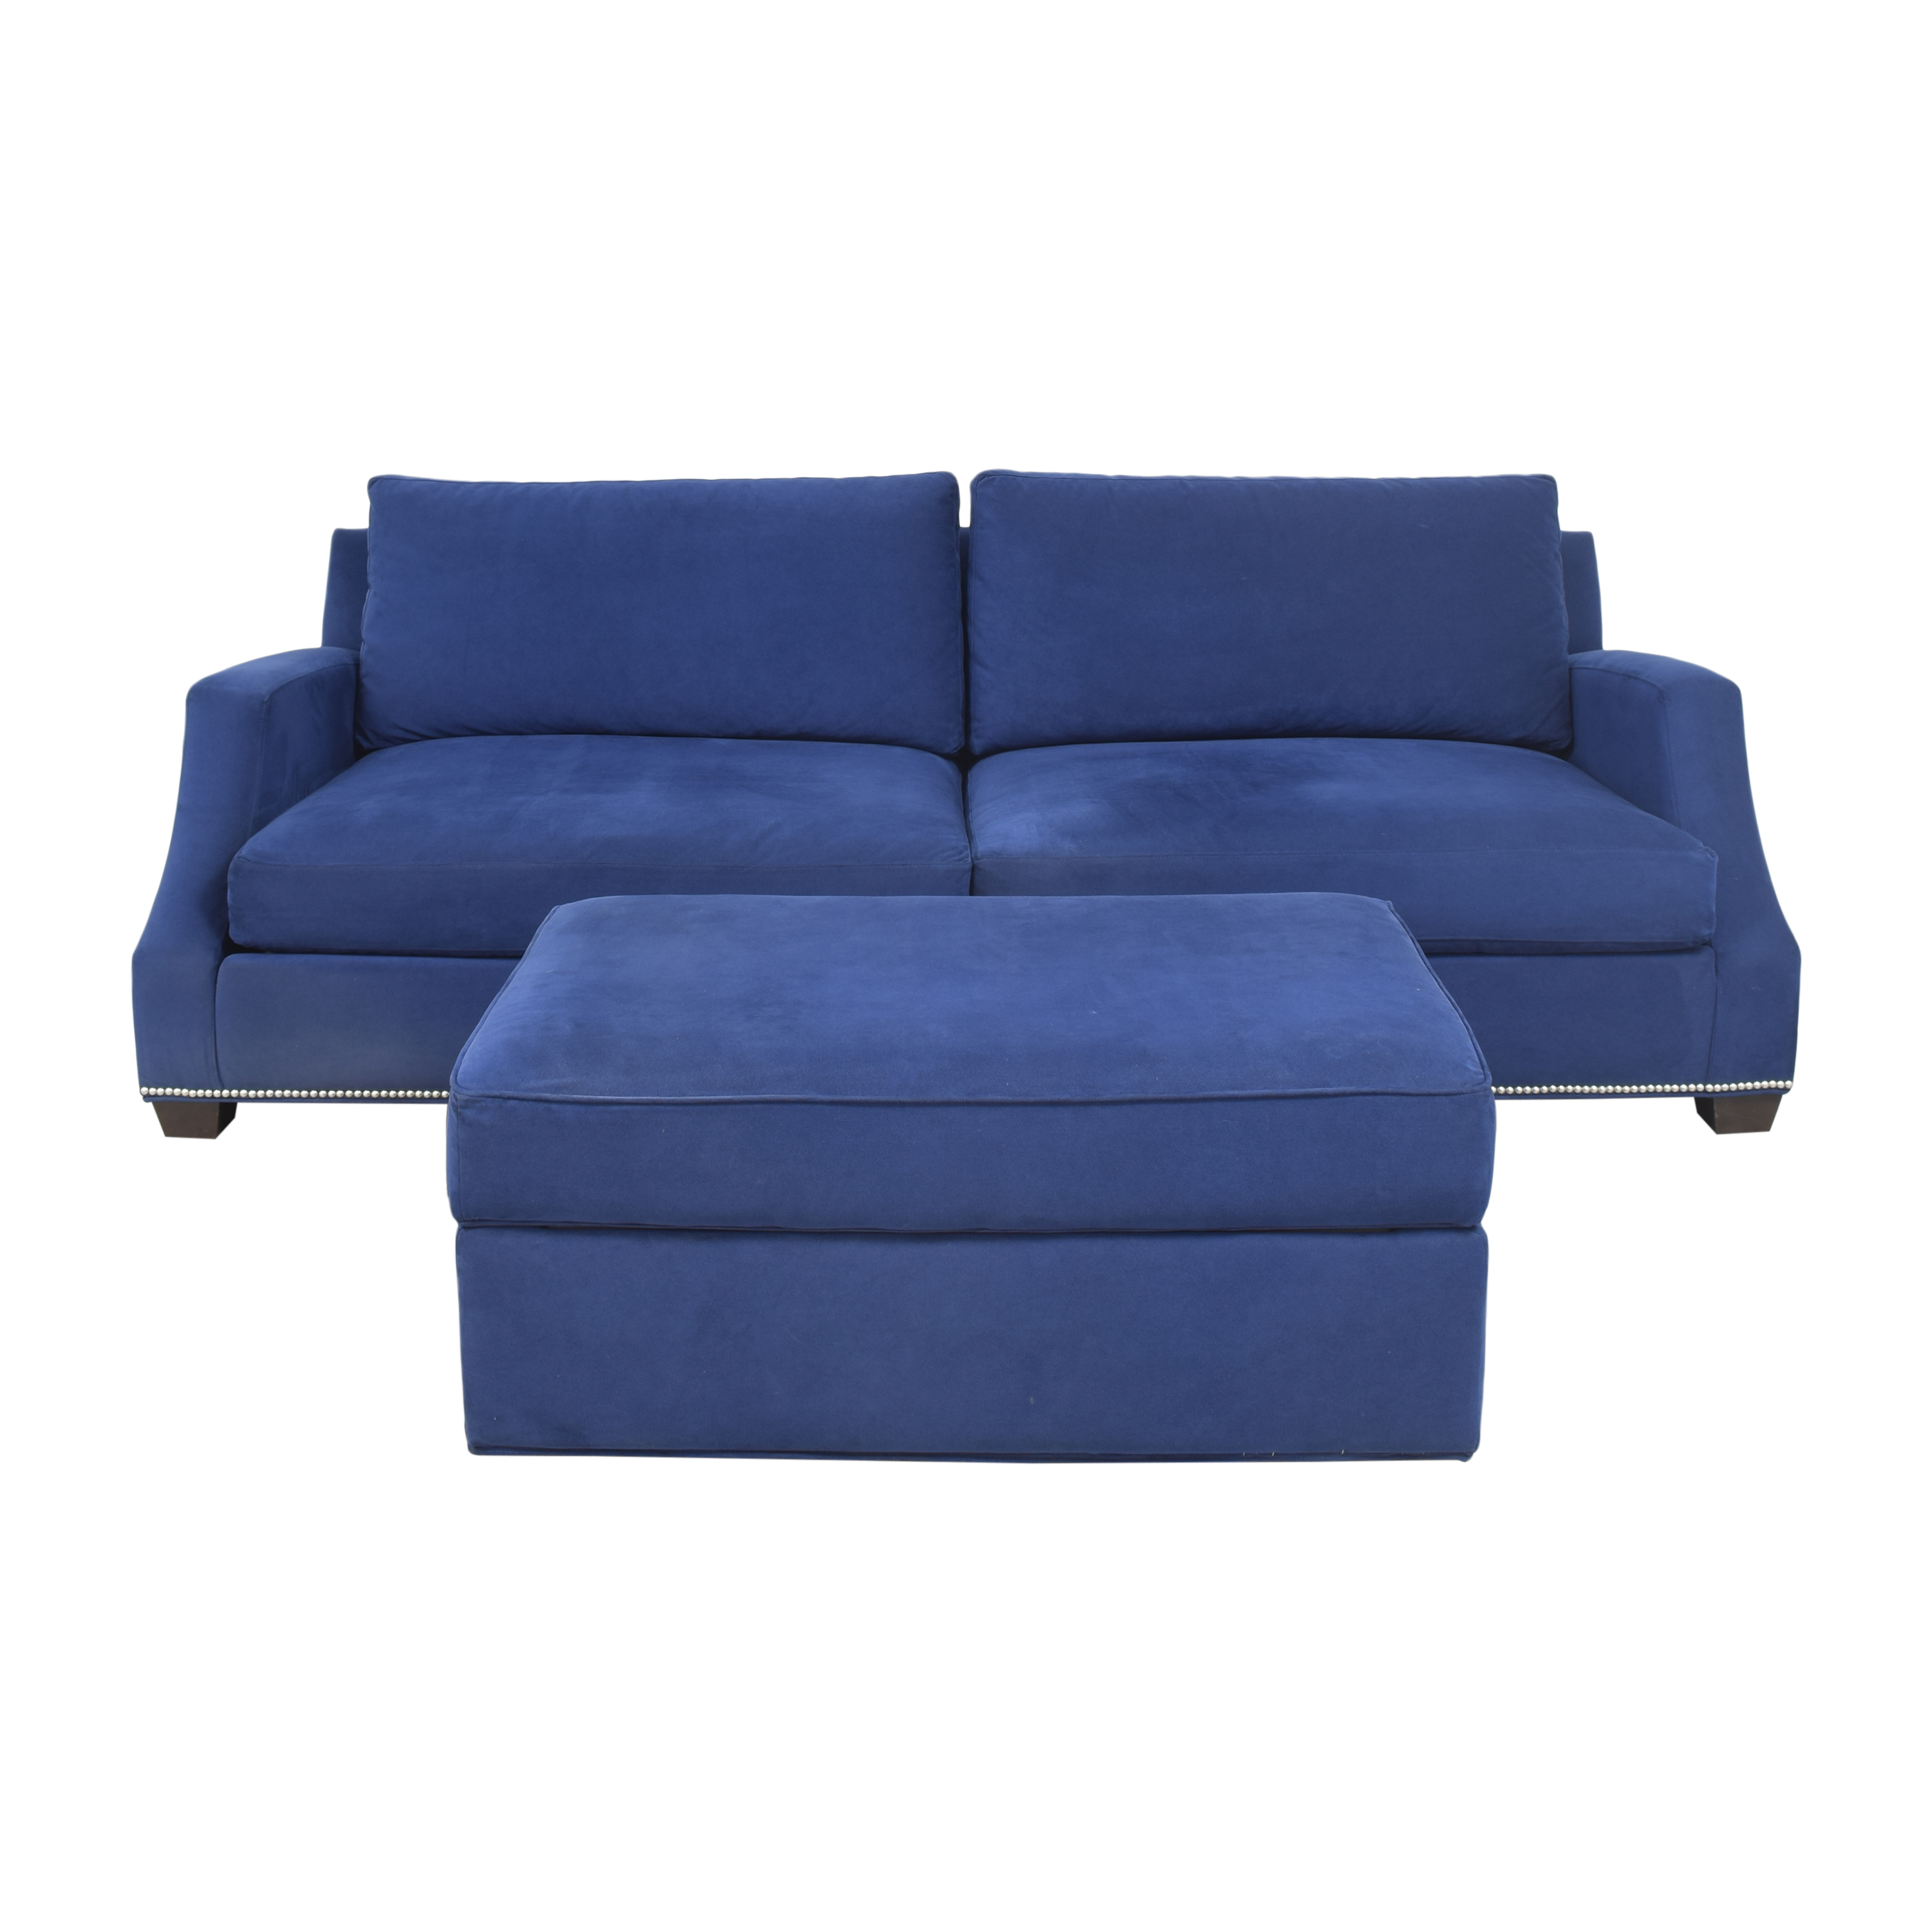 Ethan Allen Nailhead Sofa with Storage Ottoman / Sofas